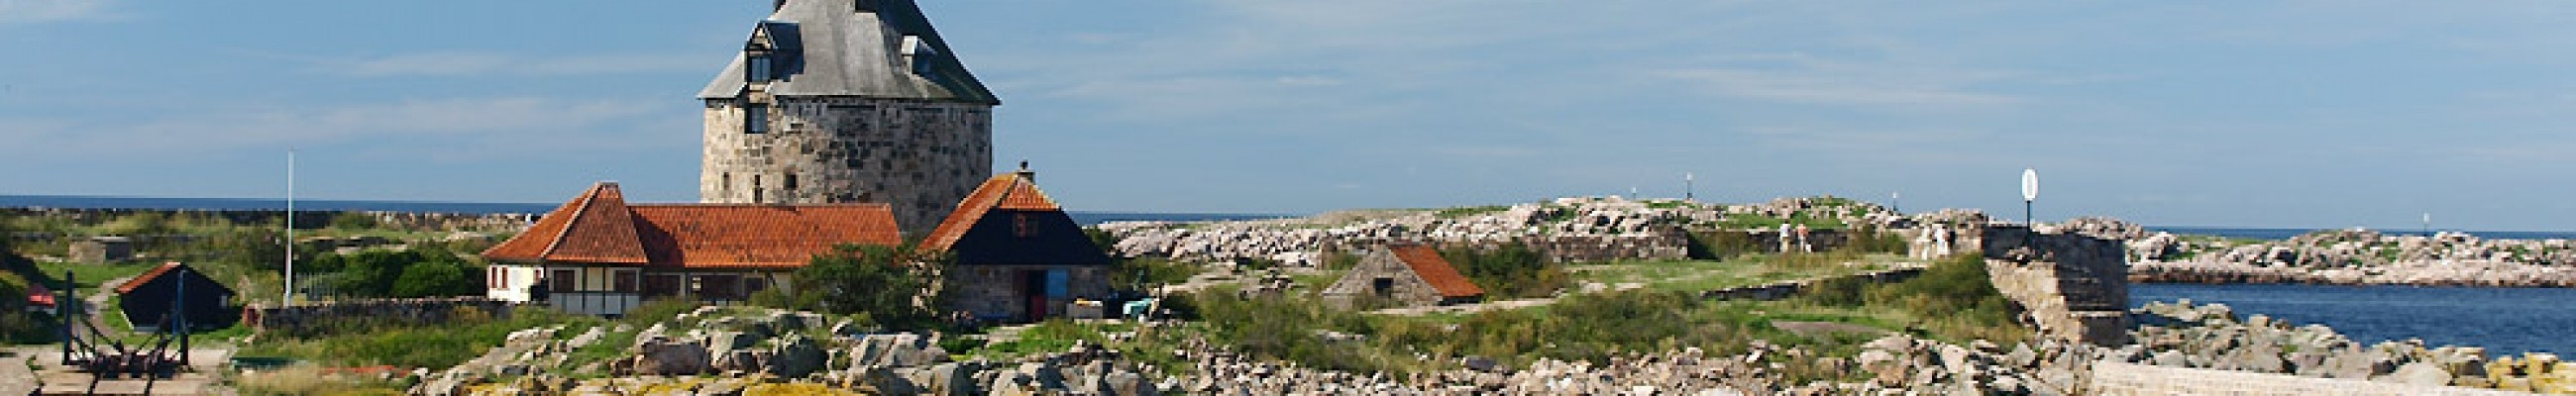 Bornholm, Pearl of the Baltic Sea